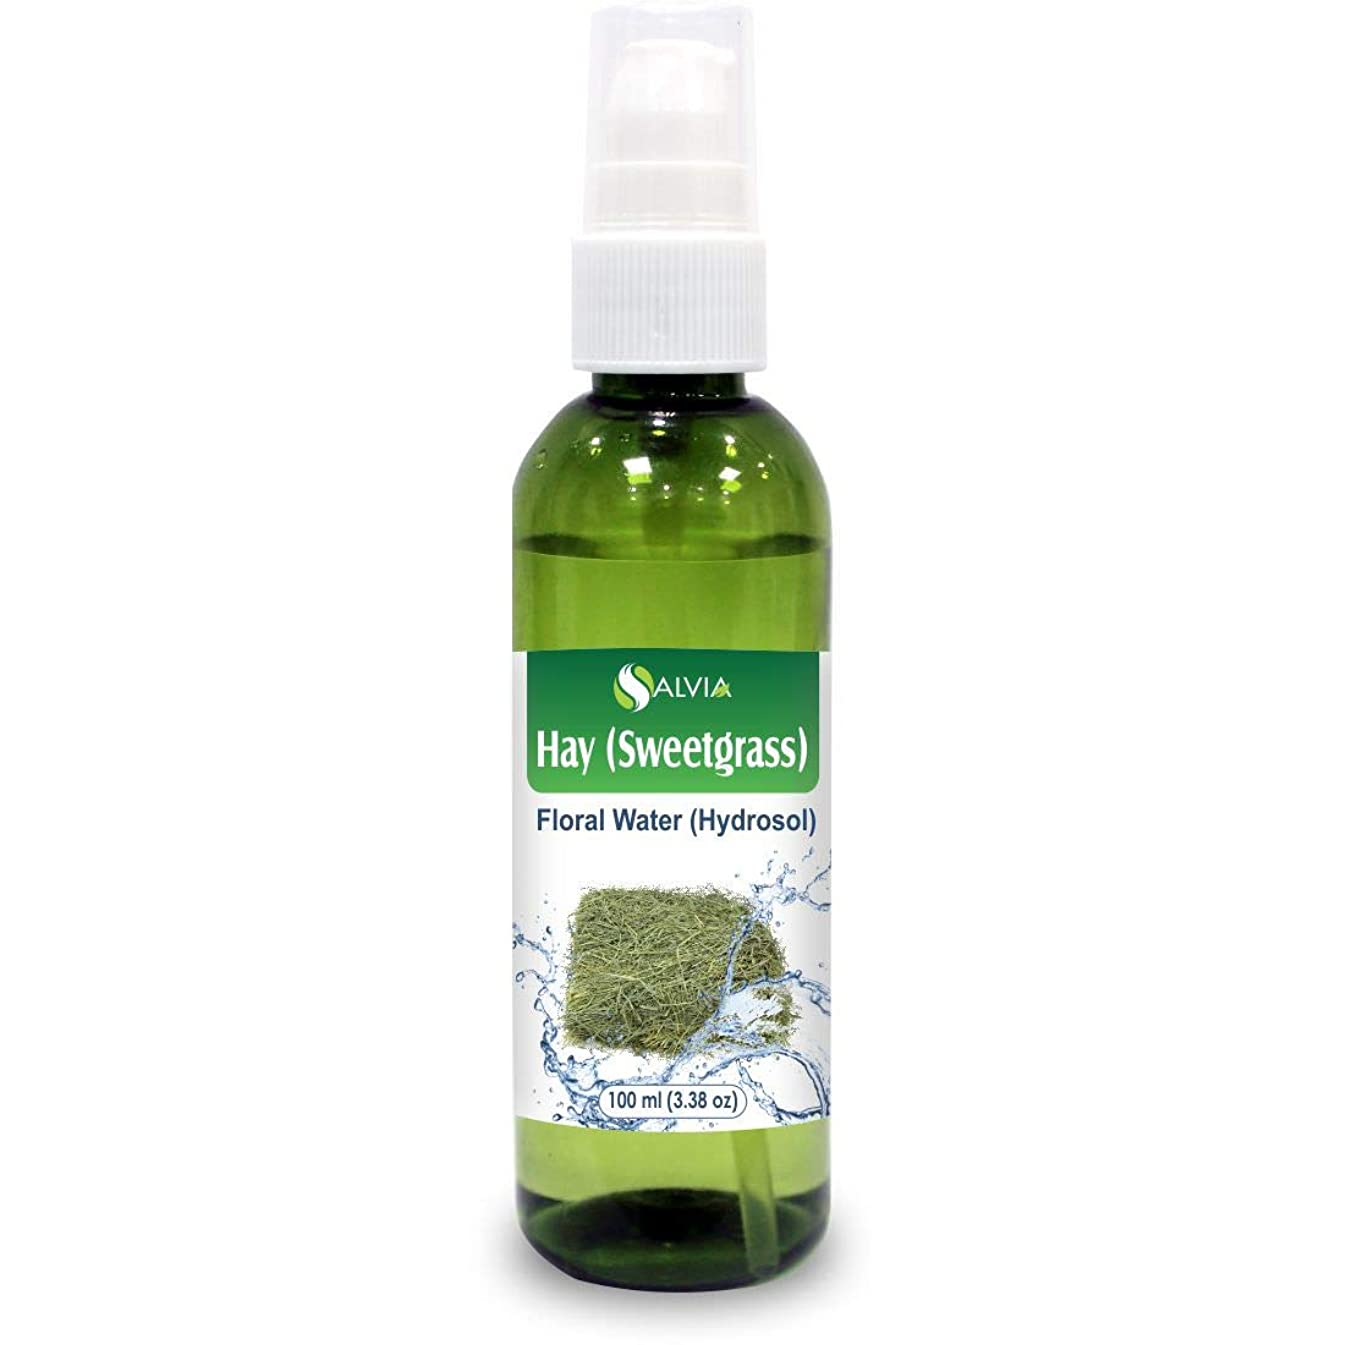 それに応じて大使牽引Hay (Sweetgrass) Floral Water 100ml (Hydrosol) 100% Pure And Natural